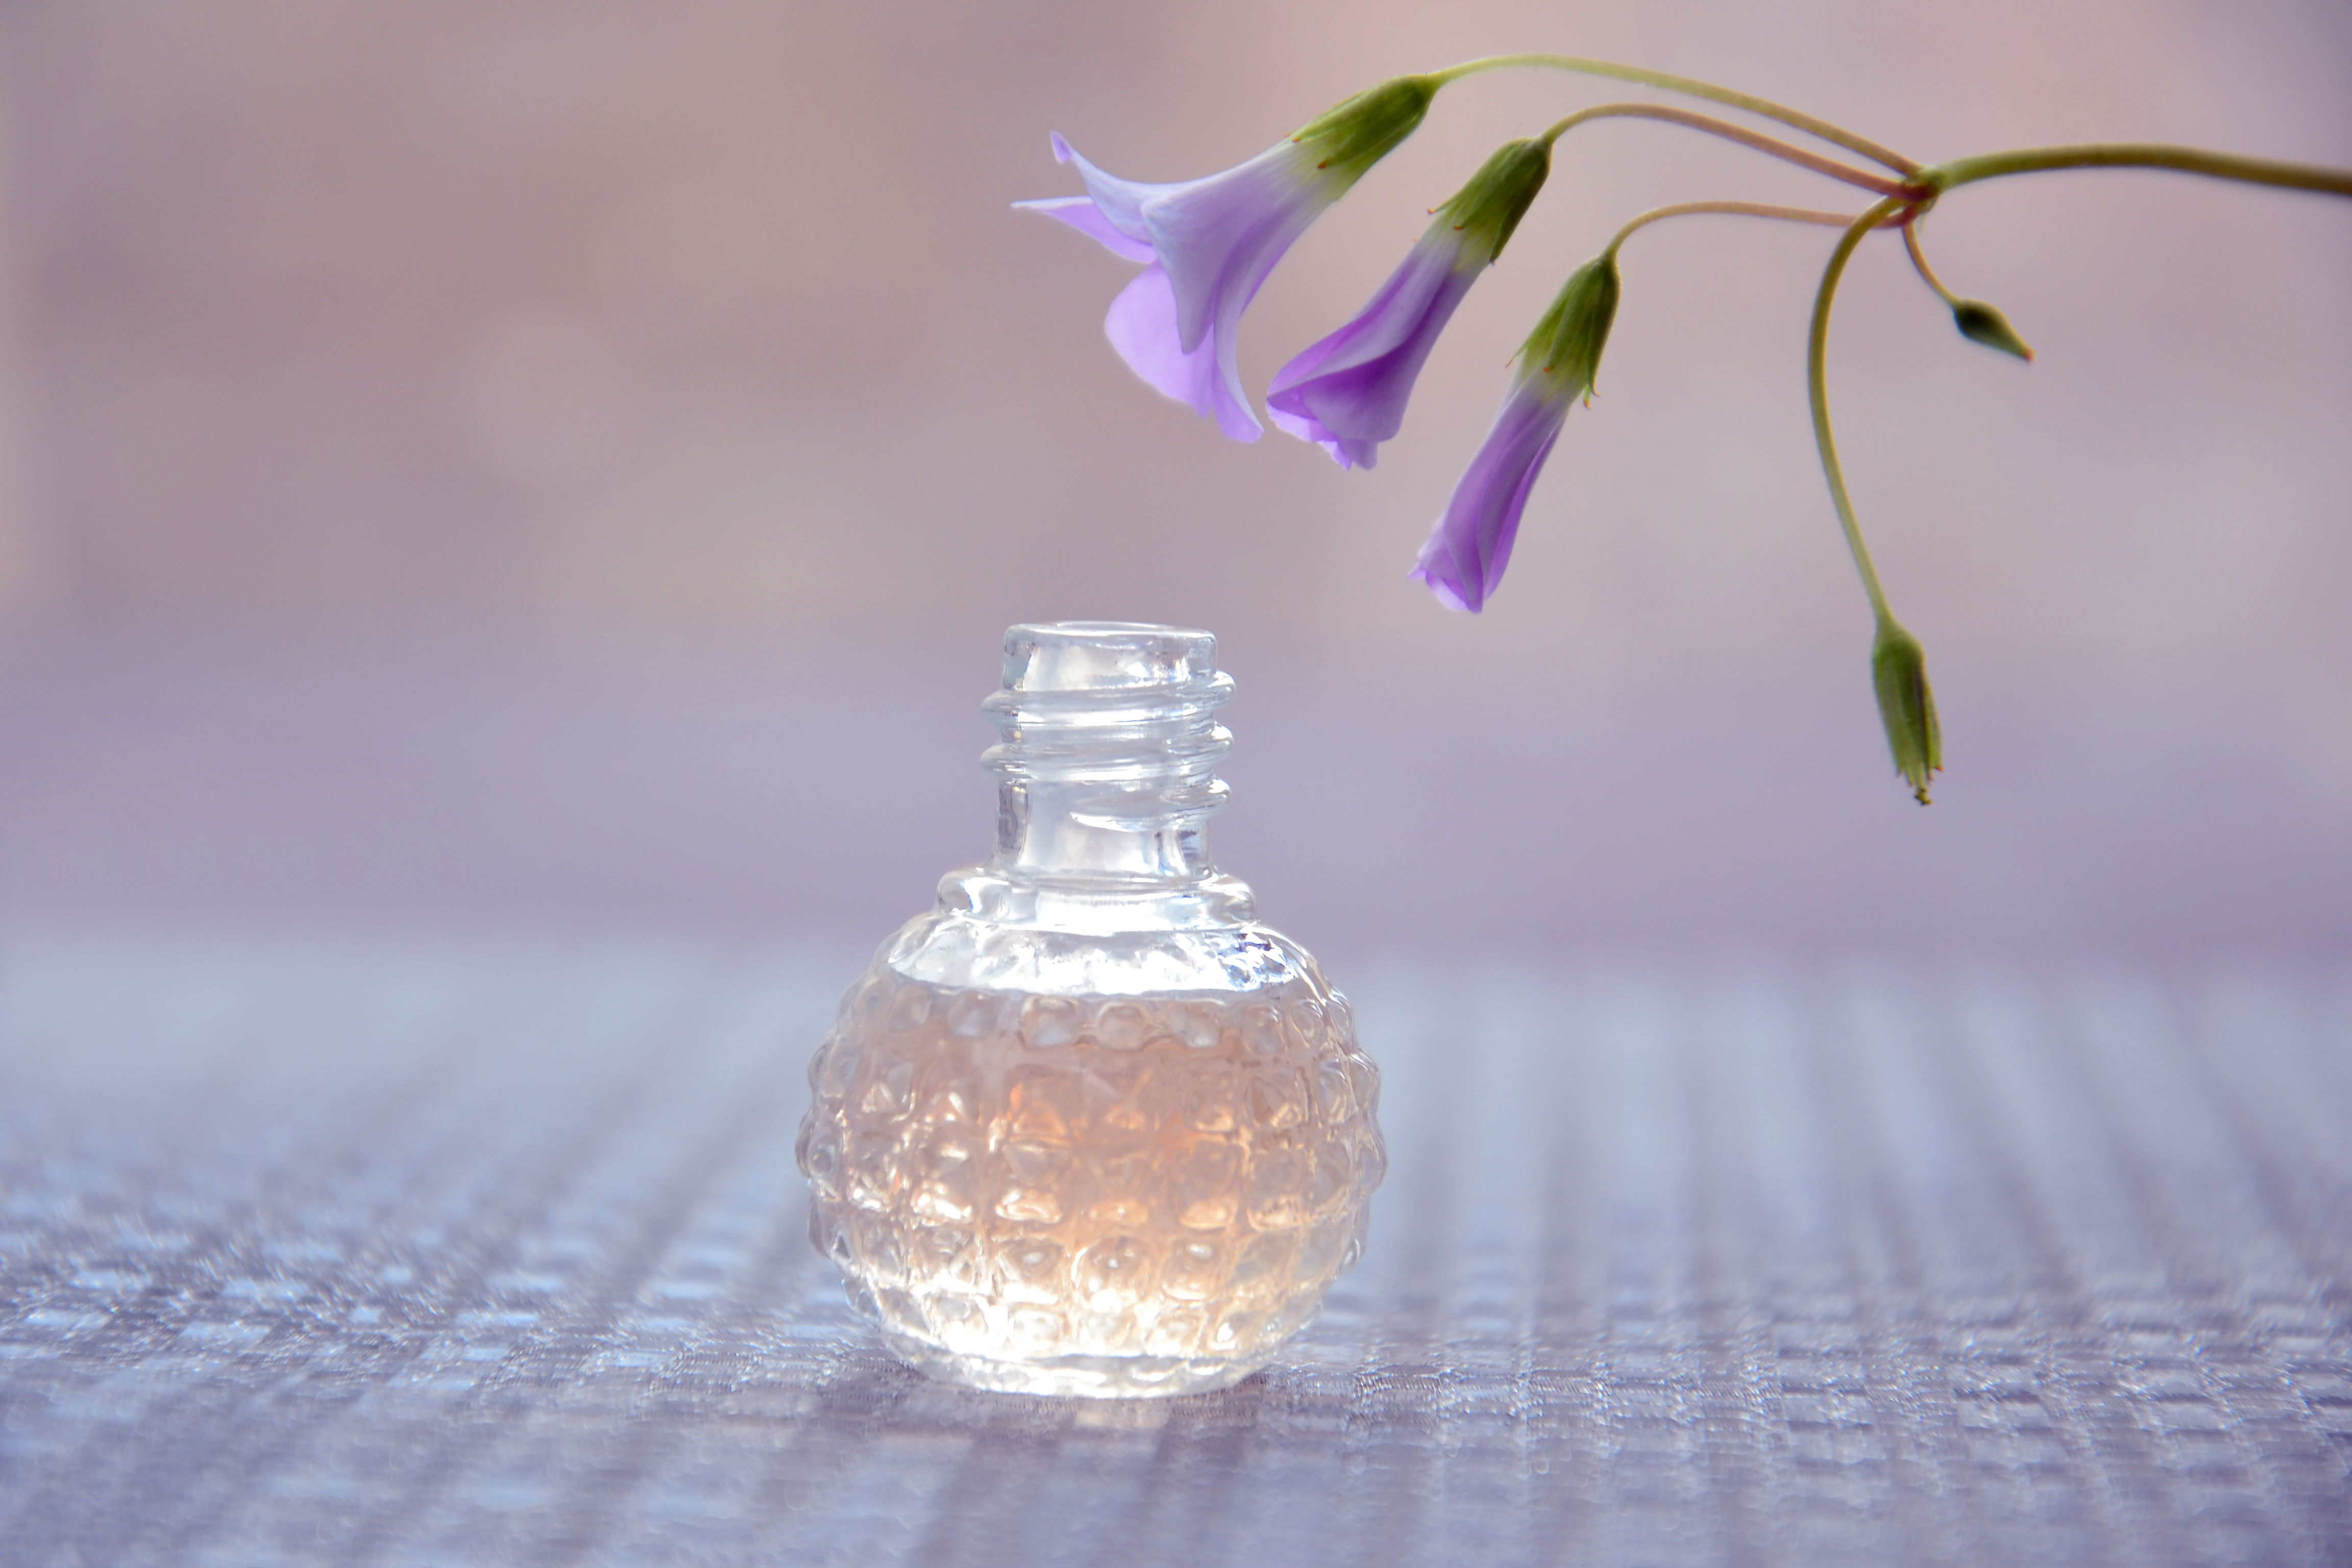 Free stock photo of aromatherapy, bottle, flowers